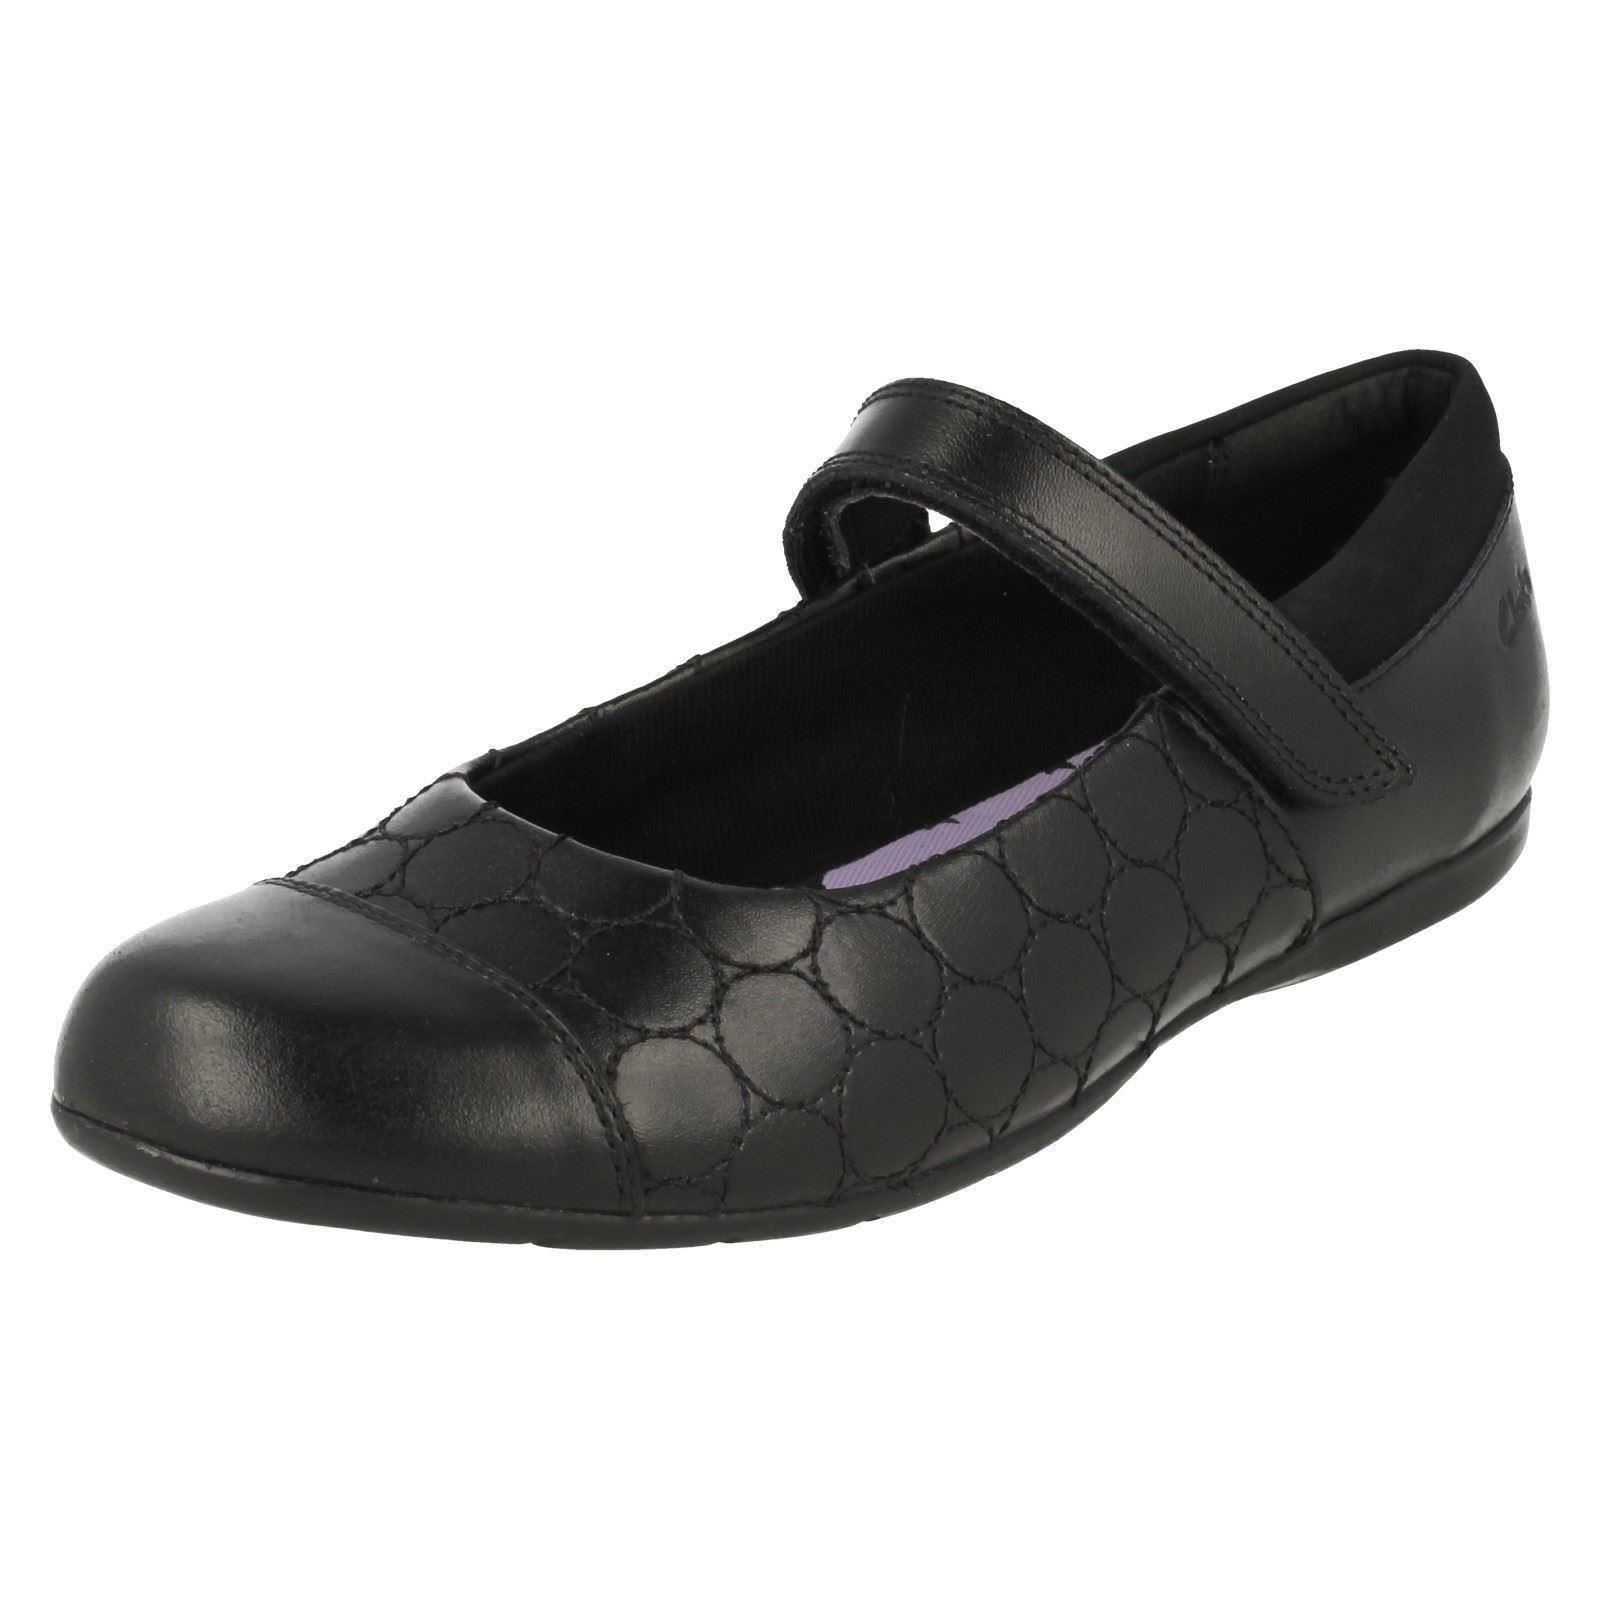 Clarks Girls School Shoes - Dance Buzz